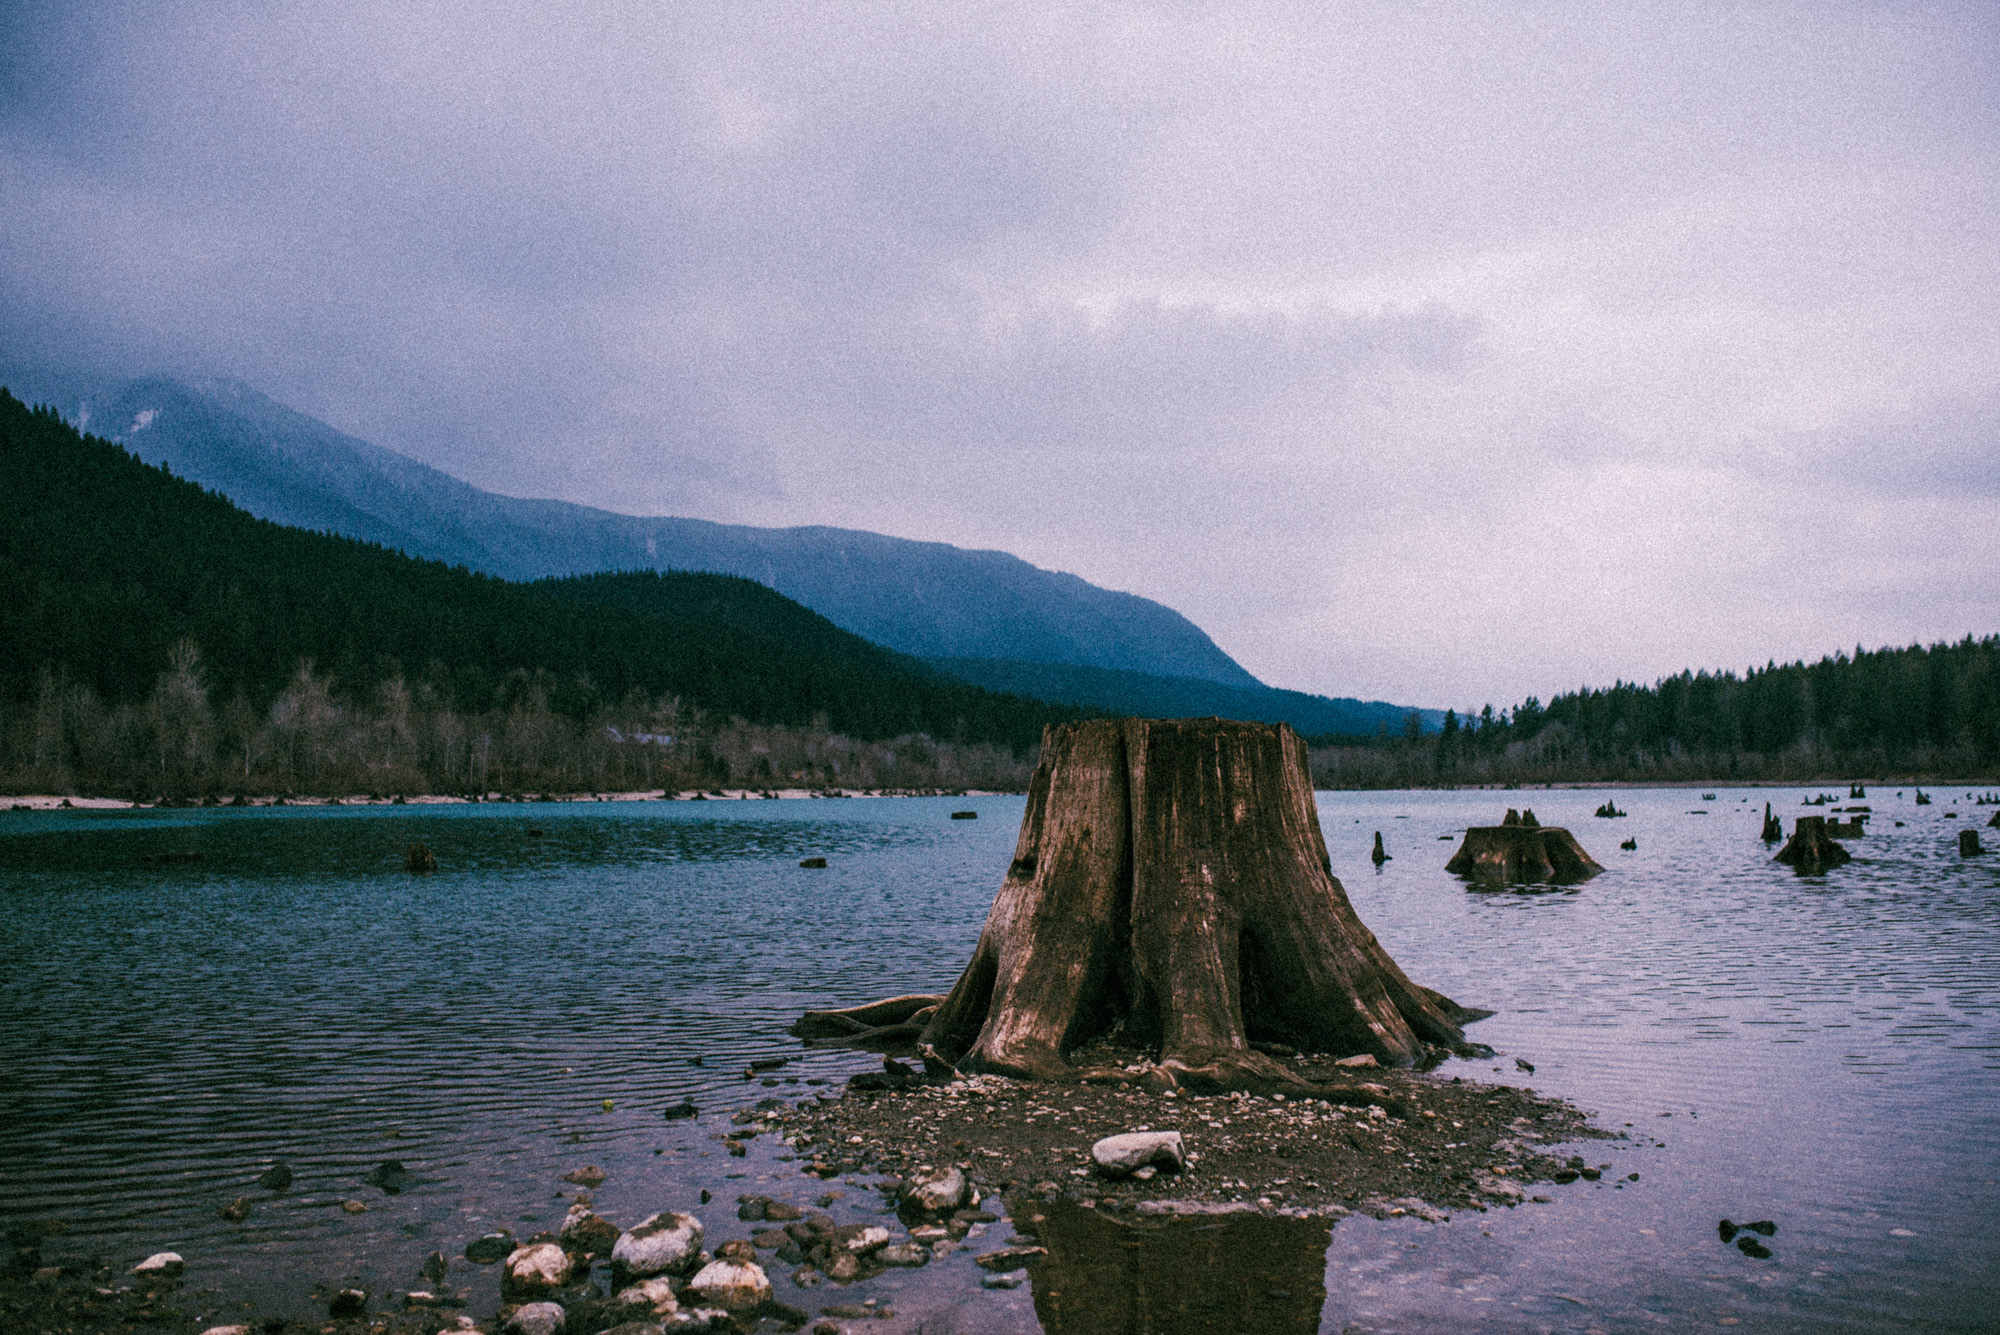 Kyle Willis Rattlesnake Lake